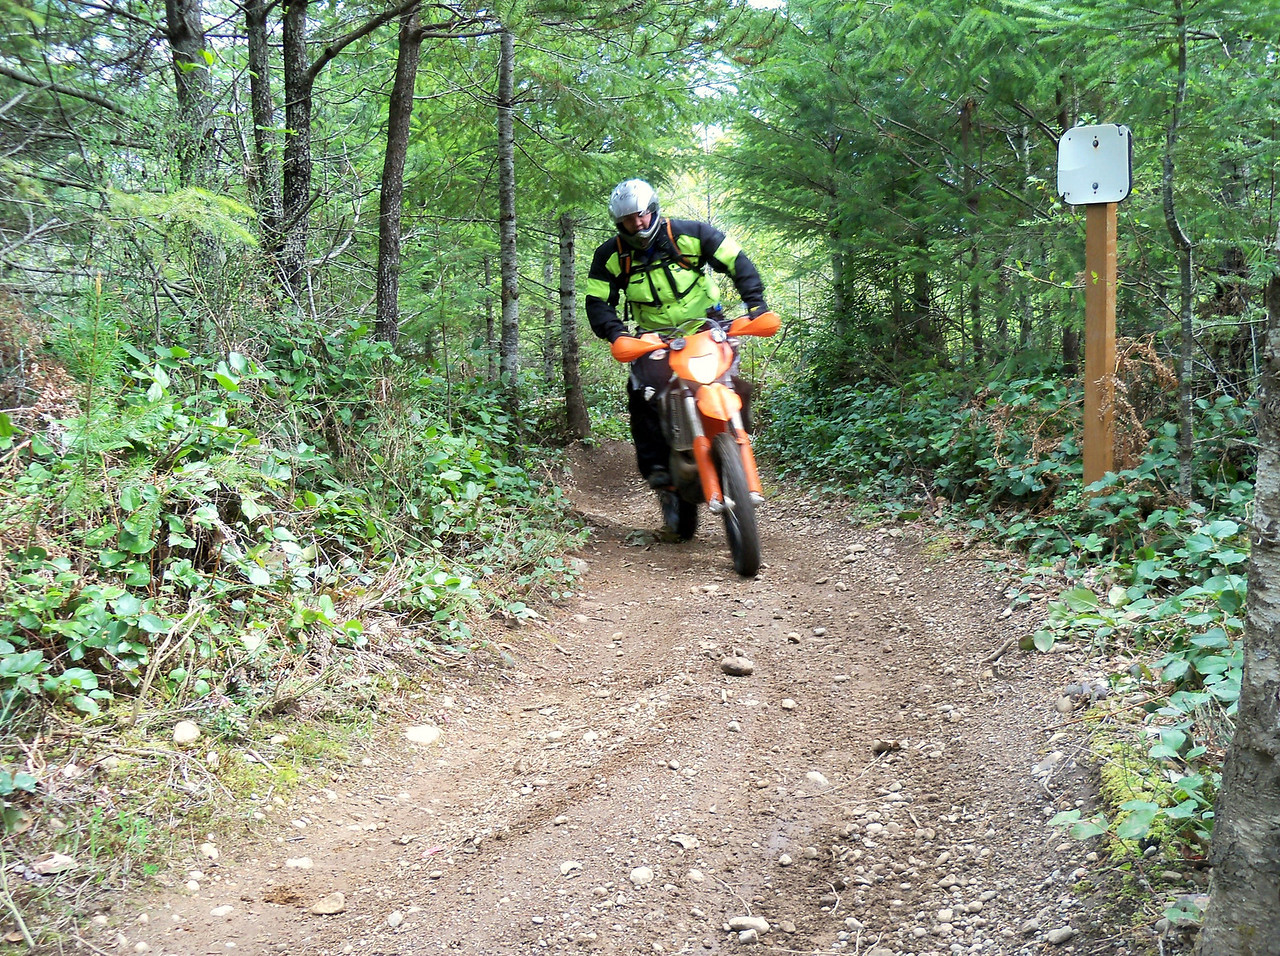 Justin and his KTM 530